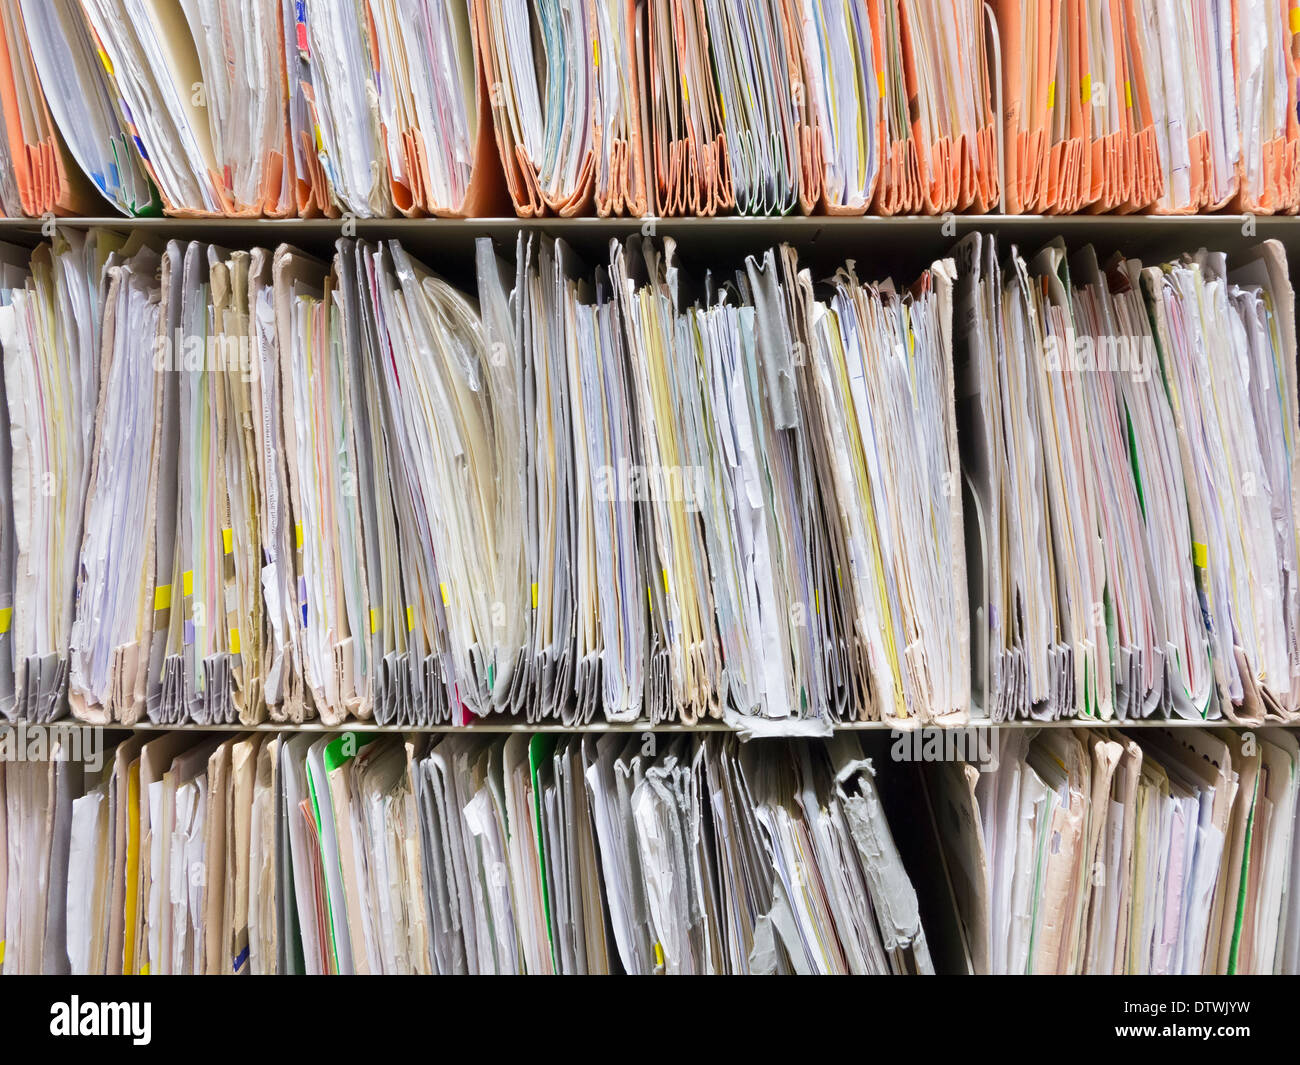 Paper files at a UK hospital - Stock Image